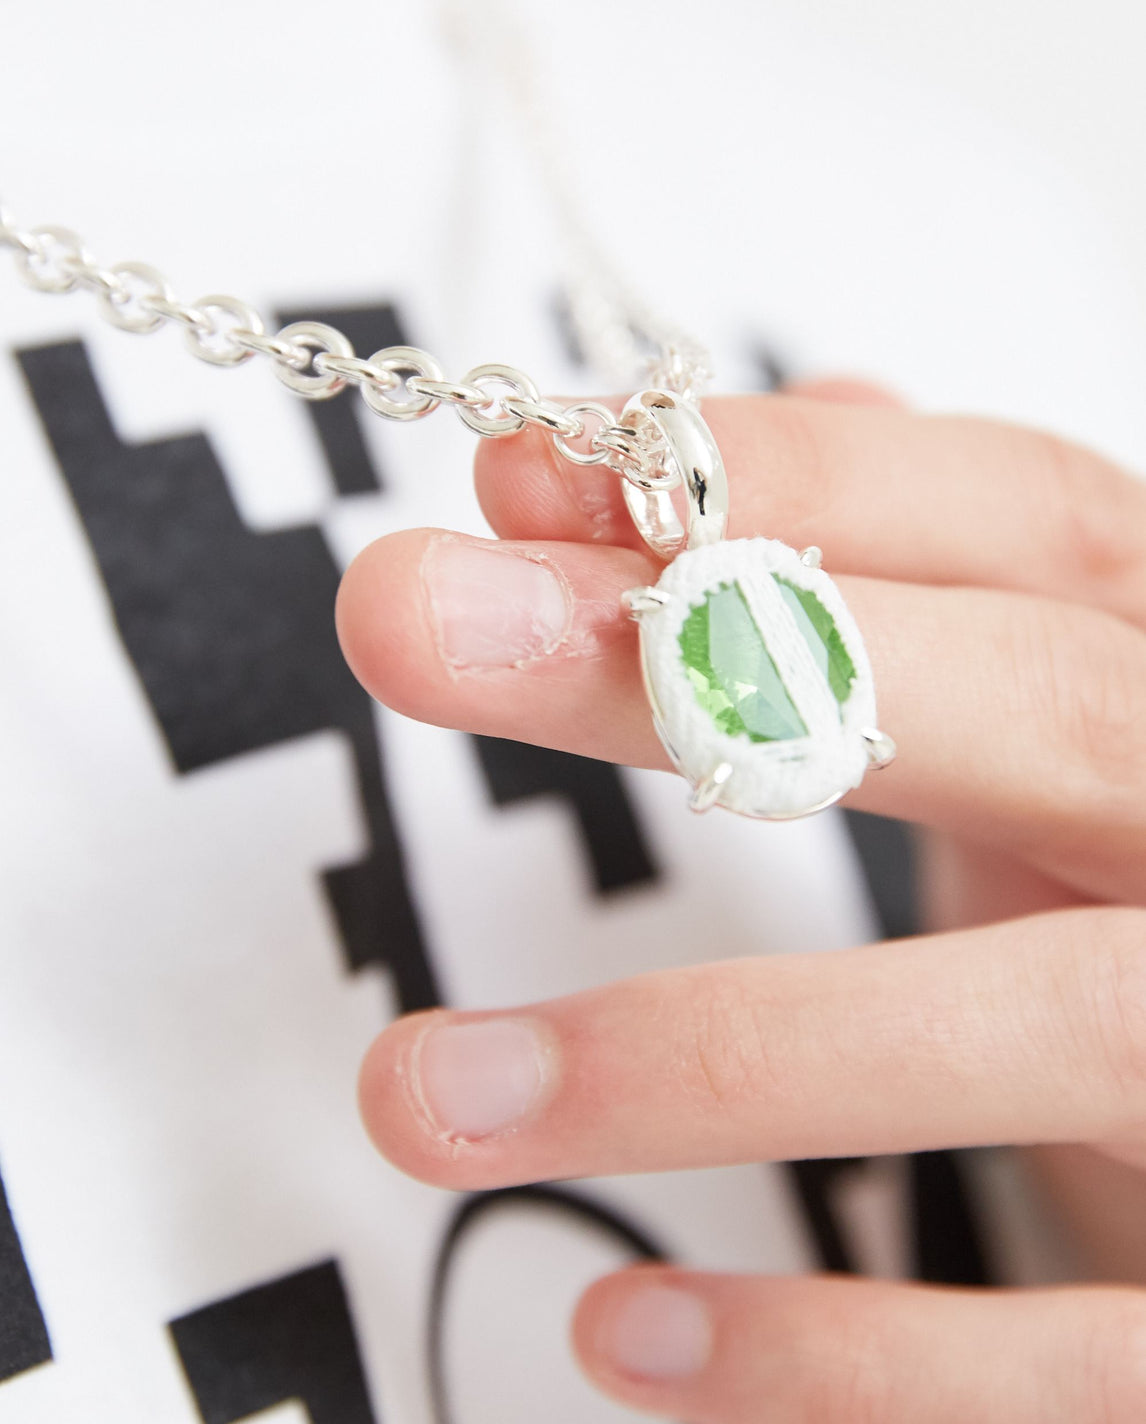 Split Signet Ring Oval Necklace - White Denim/Green Stone MENS SWEET LIME JUICE